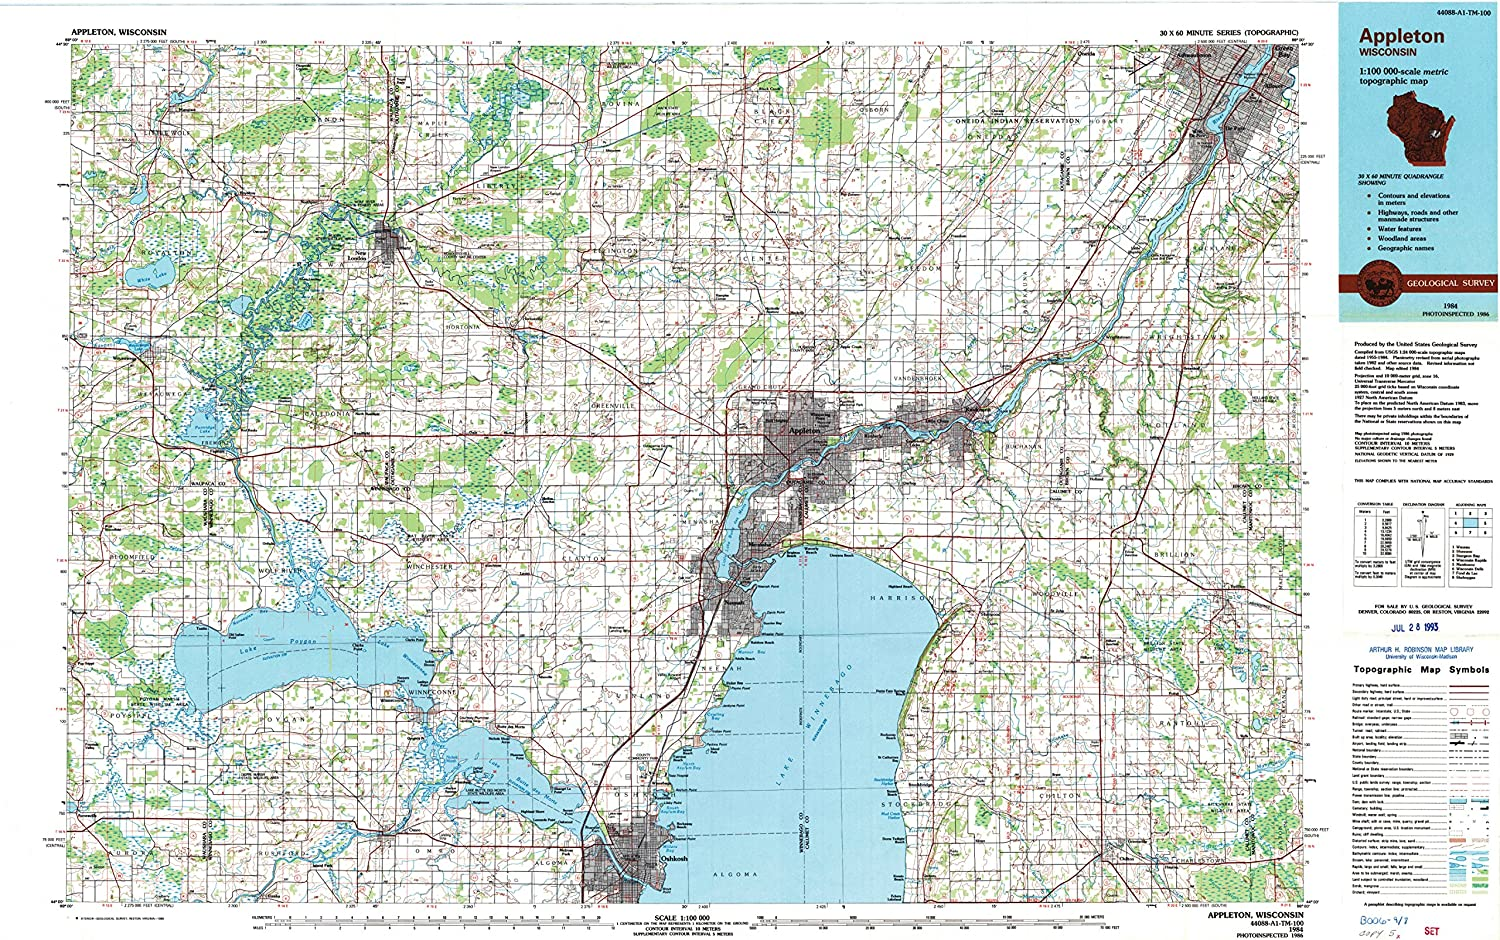 YellowMaps Appleton WI topo map 2021 autumn and winter new 1:100000 60 Scale X 30 Minute Seasonal Wrap Introduction